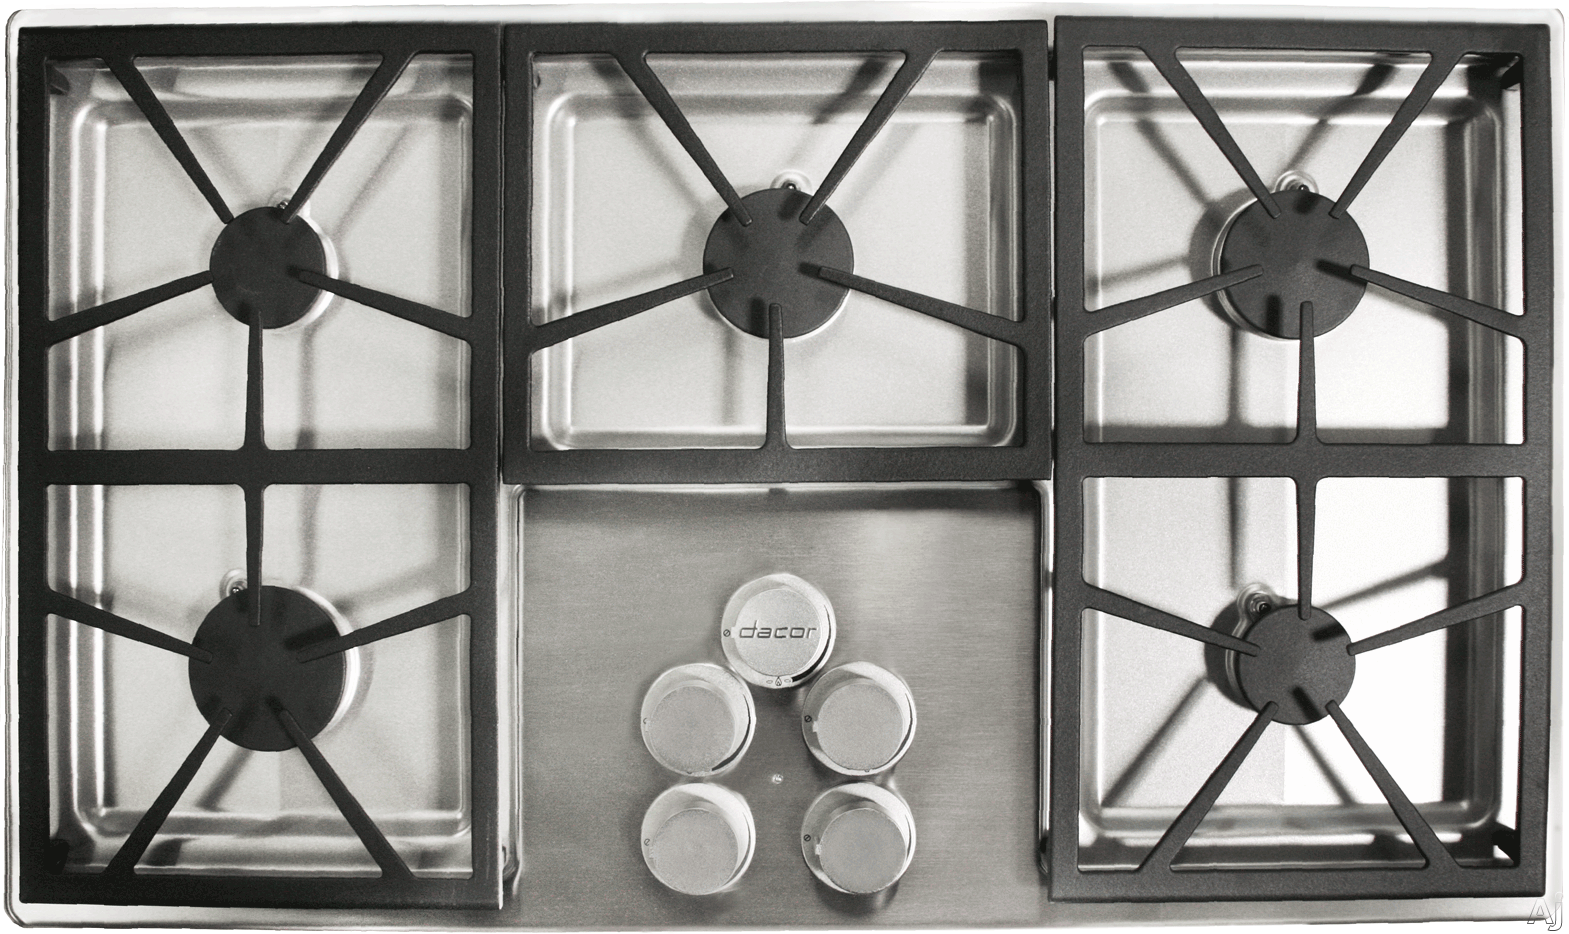 Dacor Distinctive DTCT365GSNGH 36 Inch Gas Cooktop with 5 Sealed Burners, 56,000 BTUs, Perma-Flame Technology, SmartFlame Technology, Continuous Grates, Spill Basin with PermaClean Finish and Downdraft Compatible: Stainless Steel, Natural Gas, High-Altitu